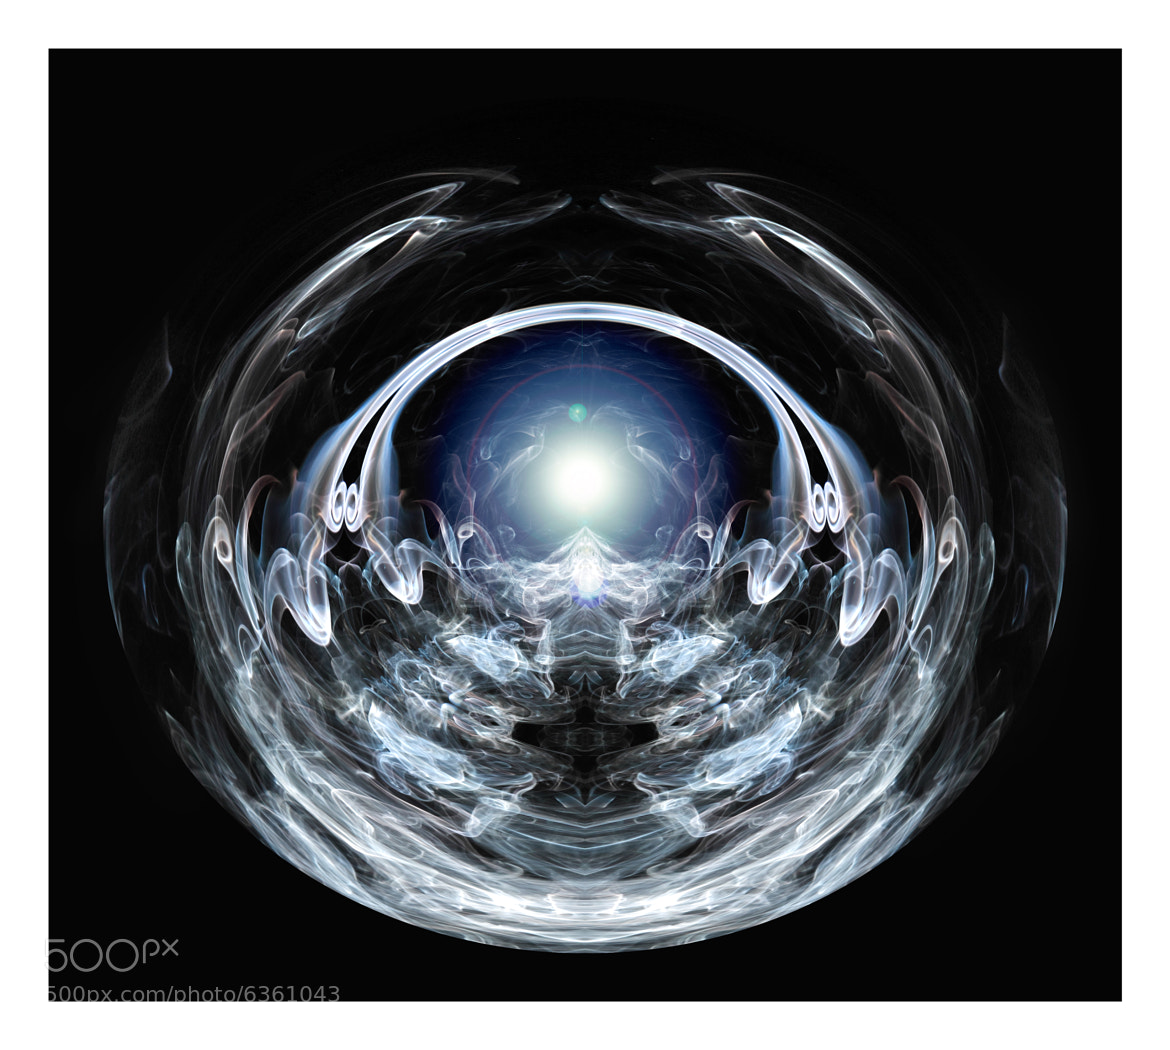 Photograph The crystal ball by Darren Bushnall on 500px